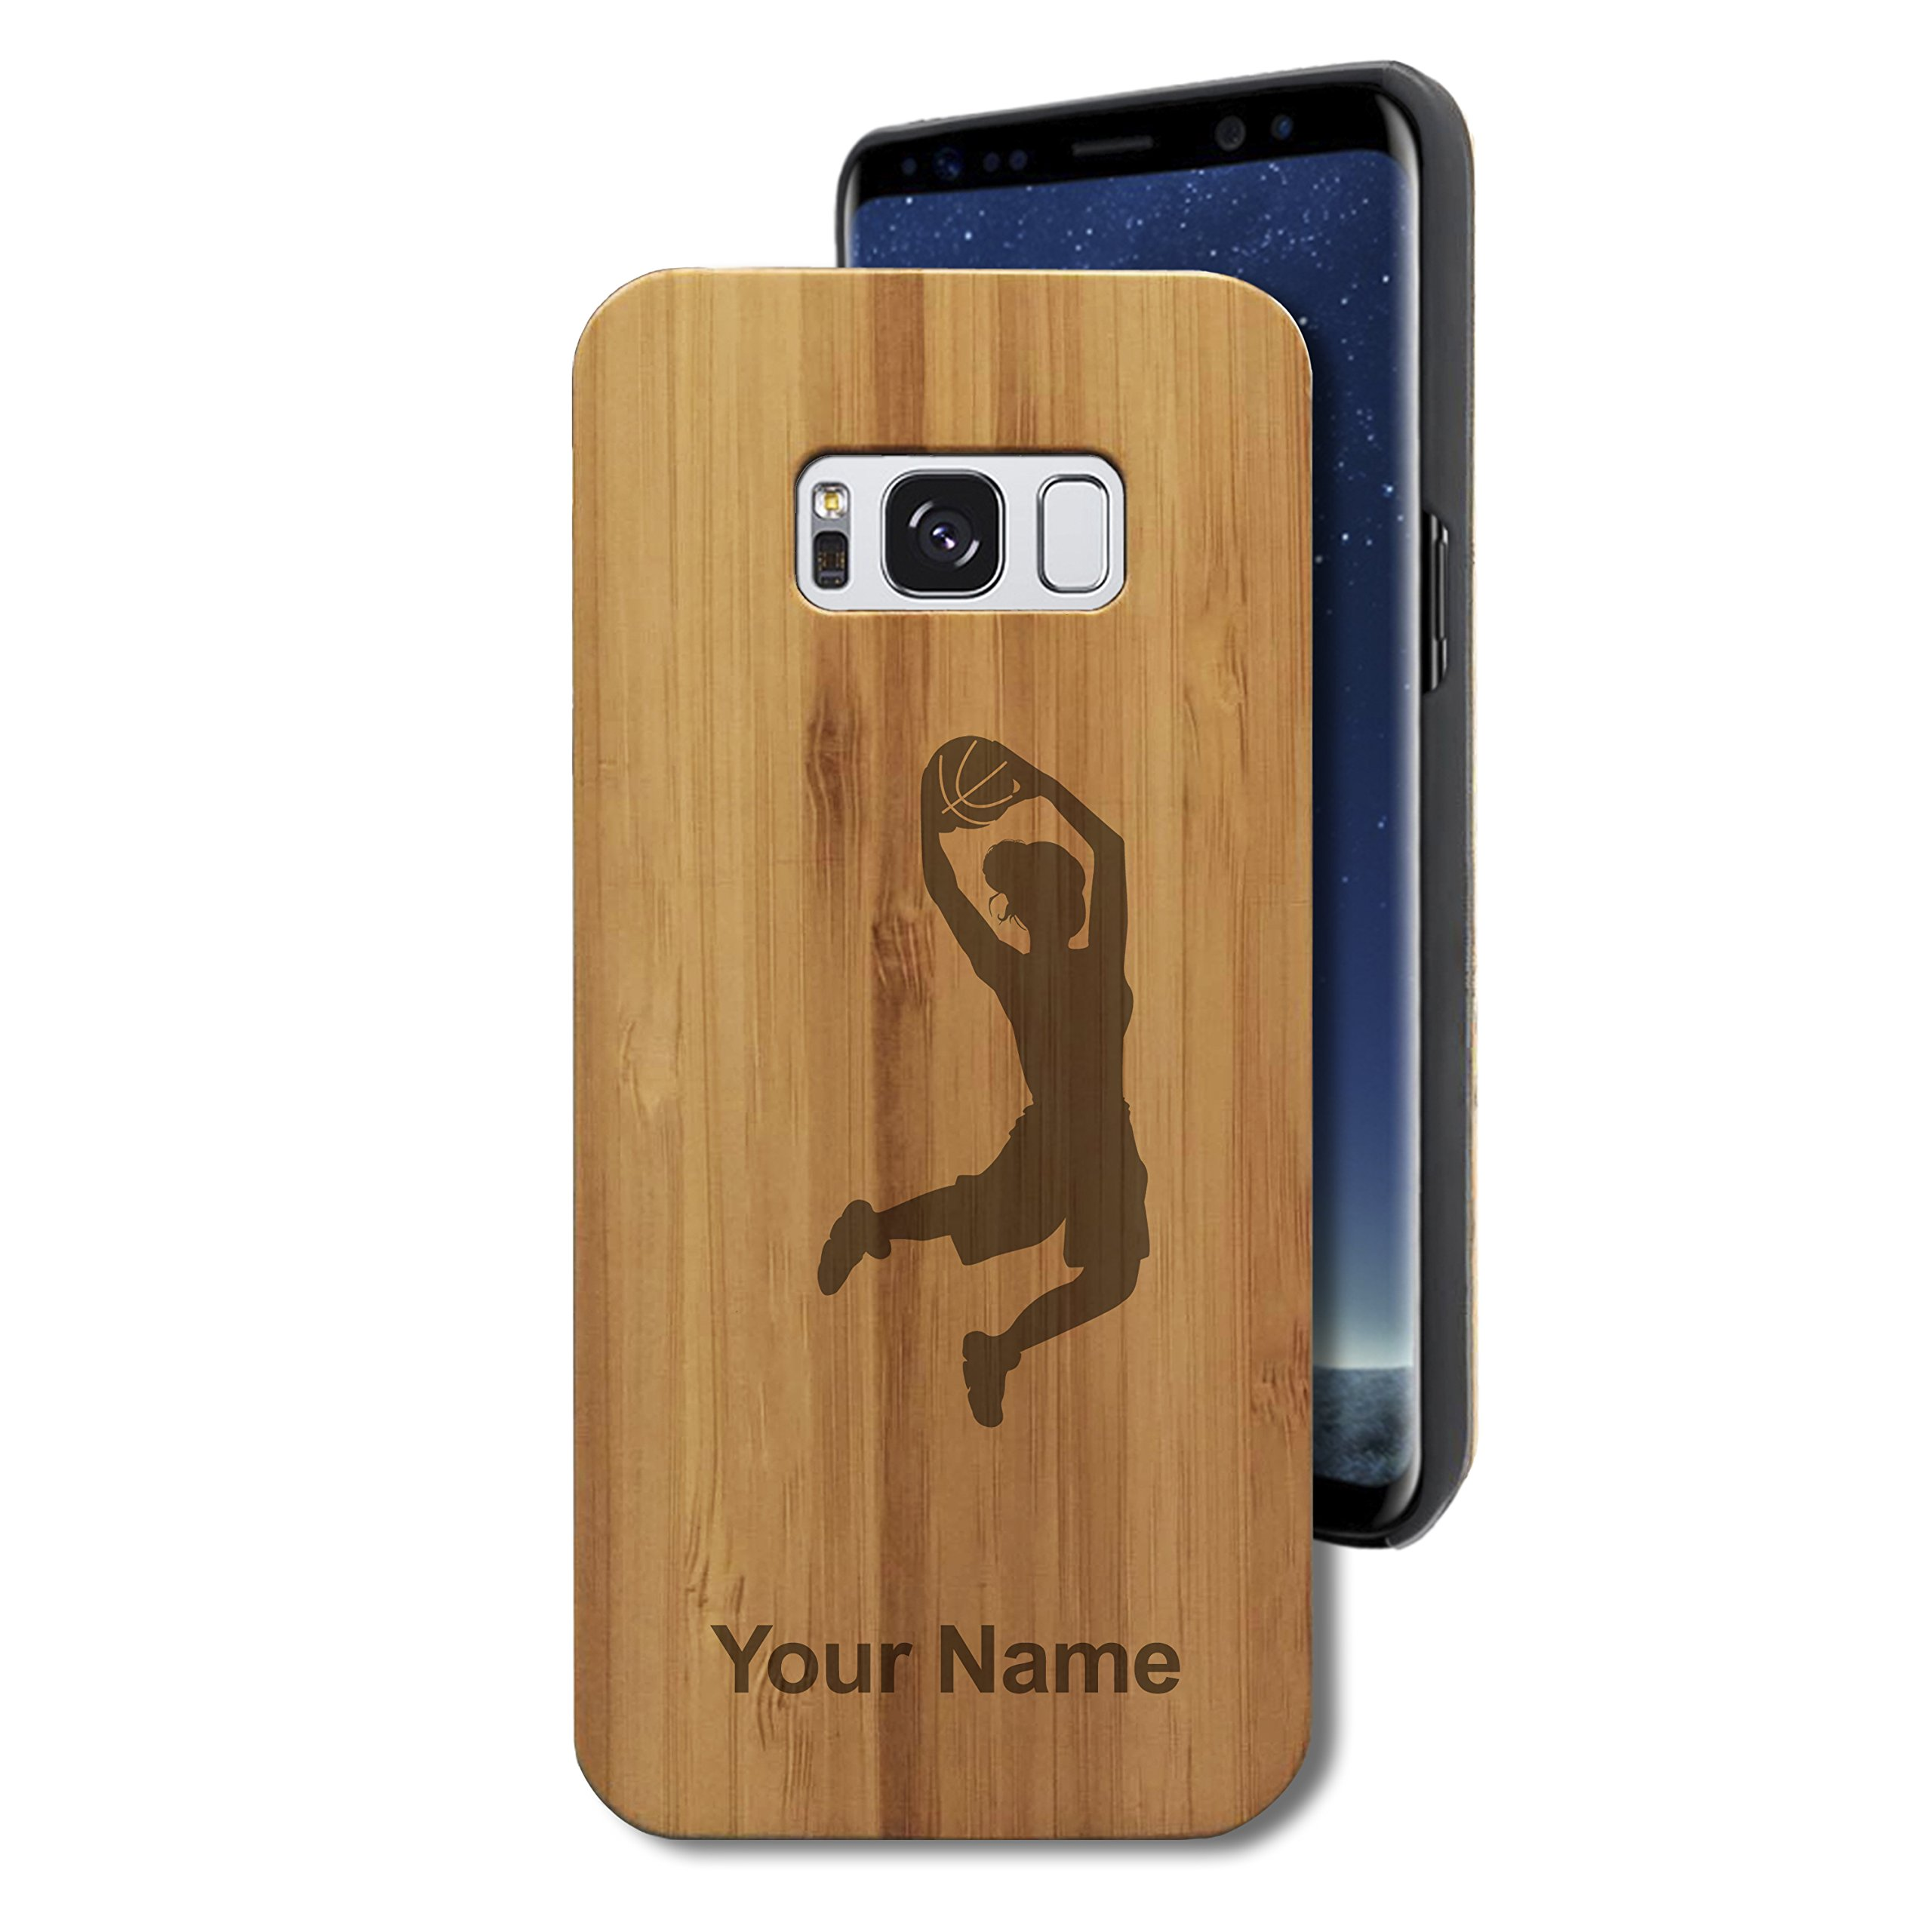 Bamboo Case for Galaxy S8 - Basketball Slam Dunk Woman - Personalized Engraving Included